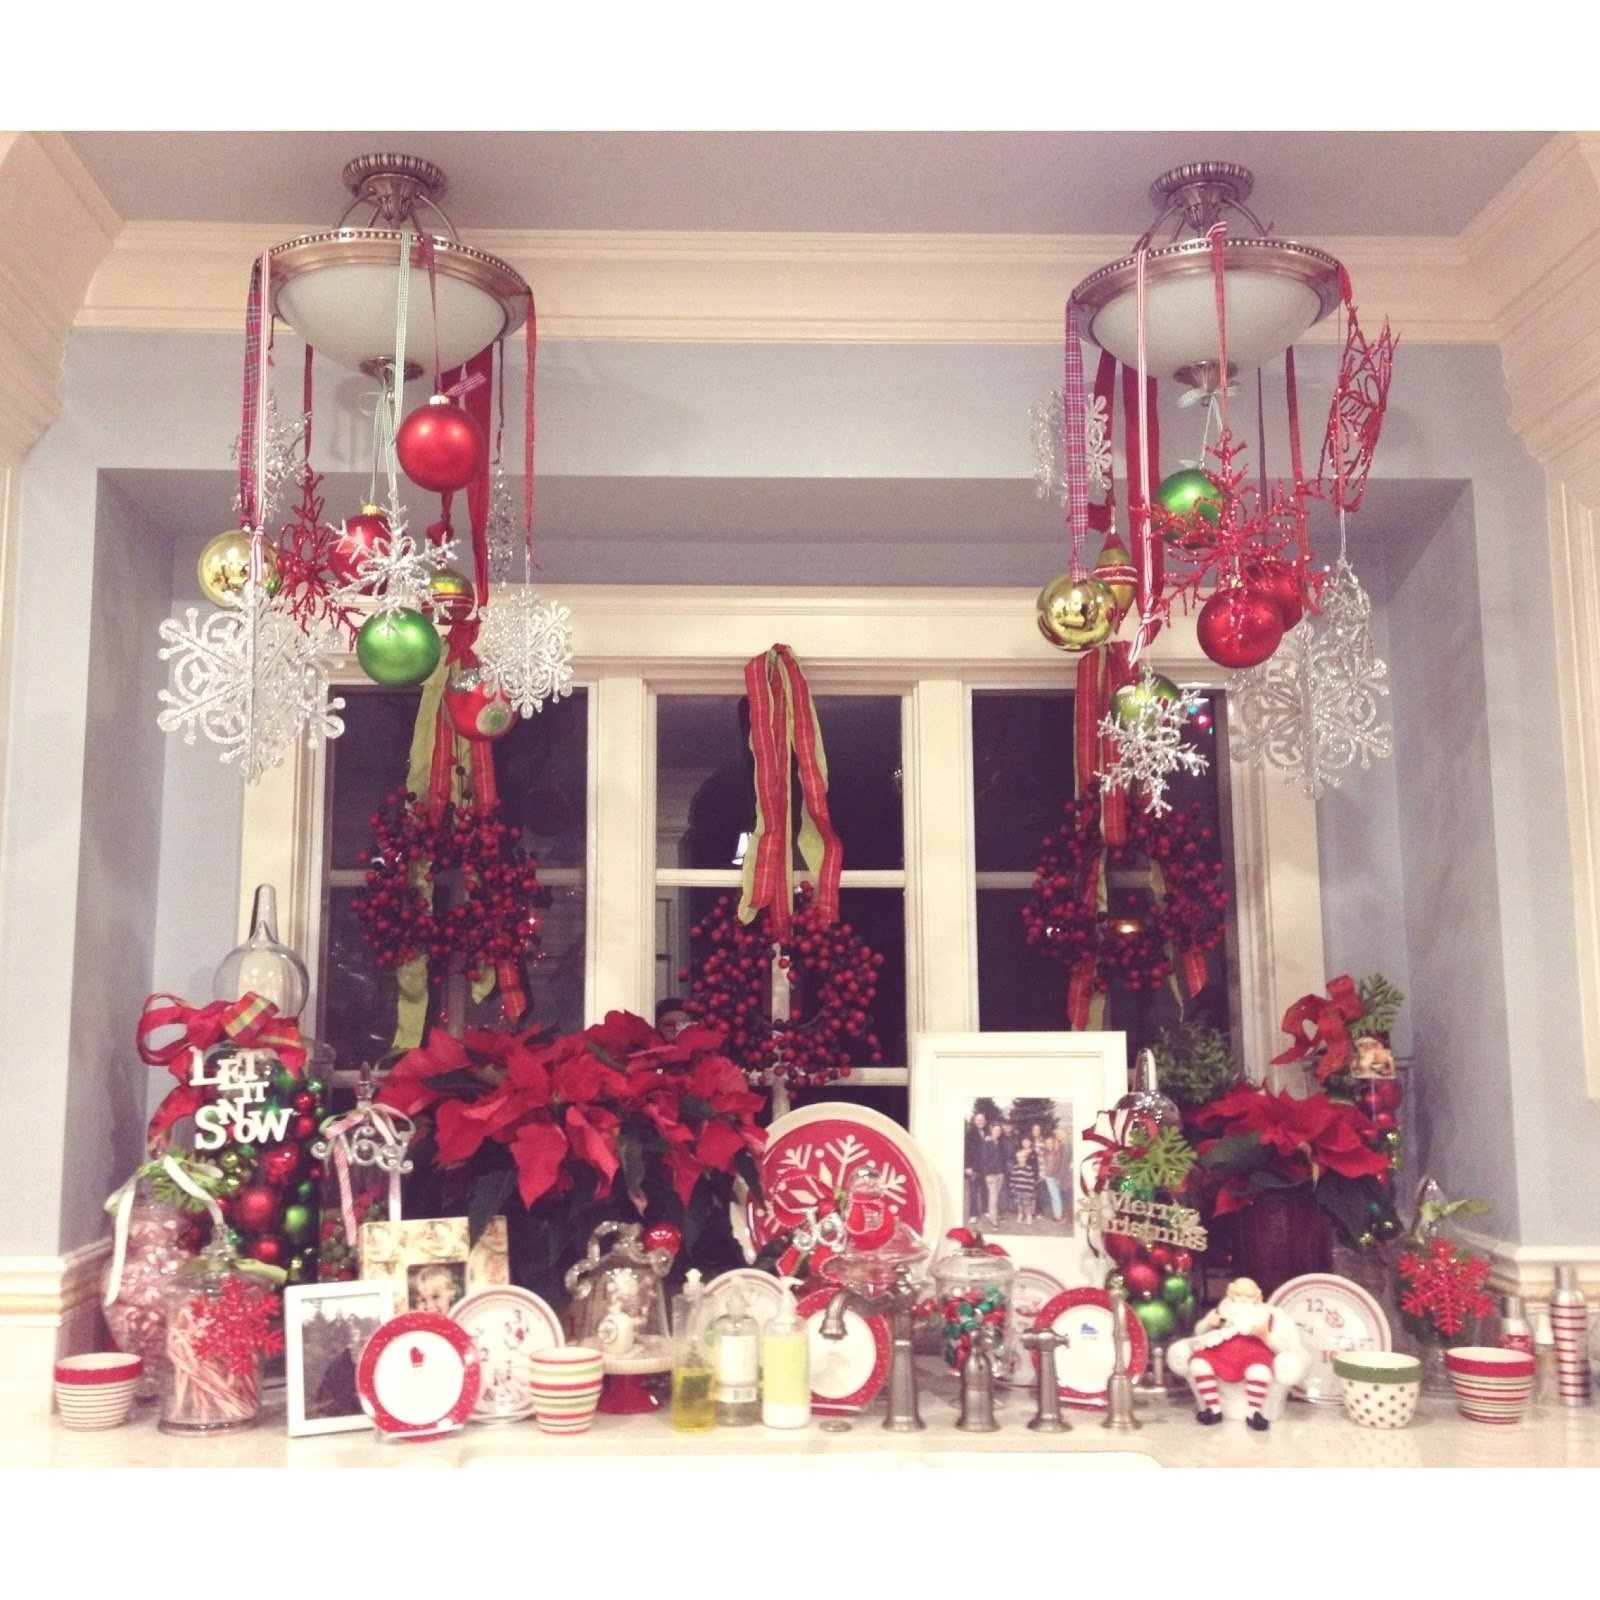 10 Fabulous Christmas Decorating Ideas For Windows holiday window decorating ideas christmas home intuitive 2020